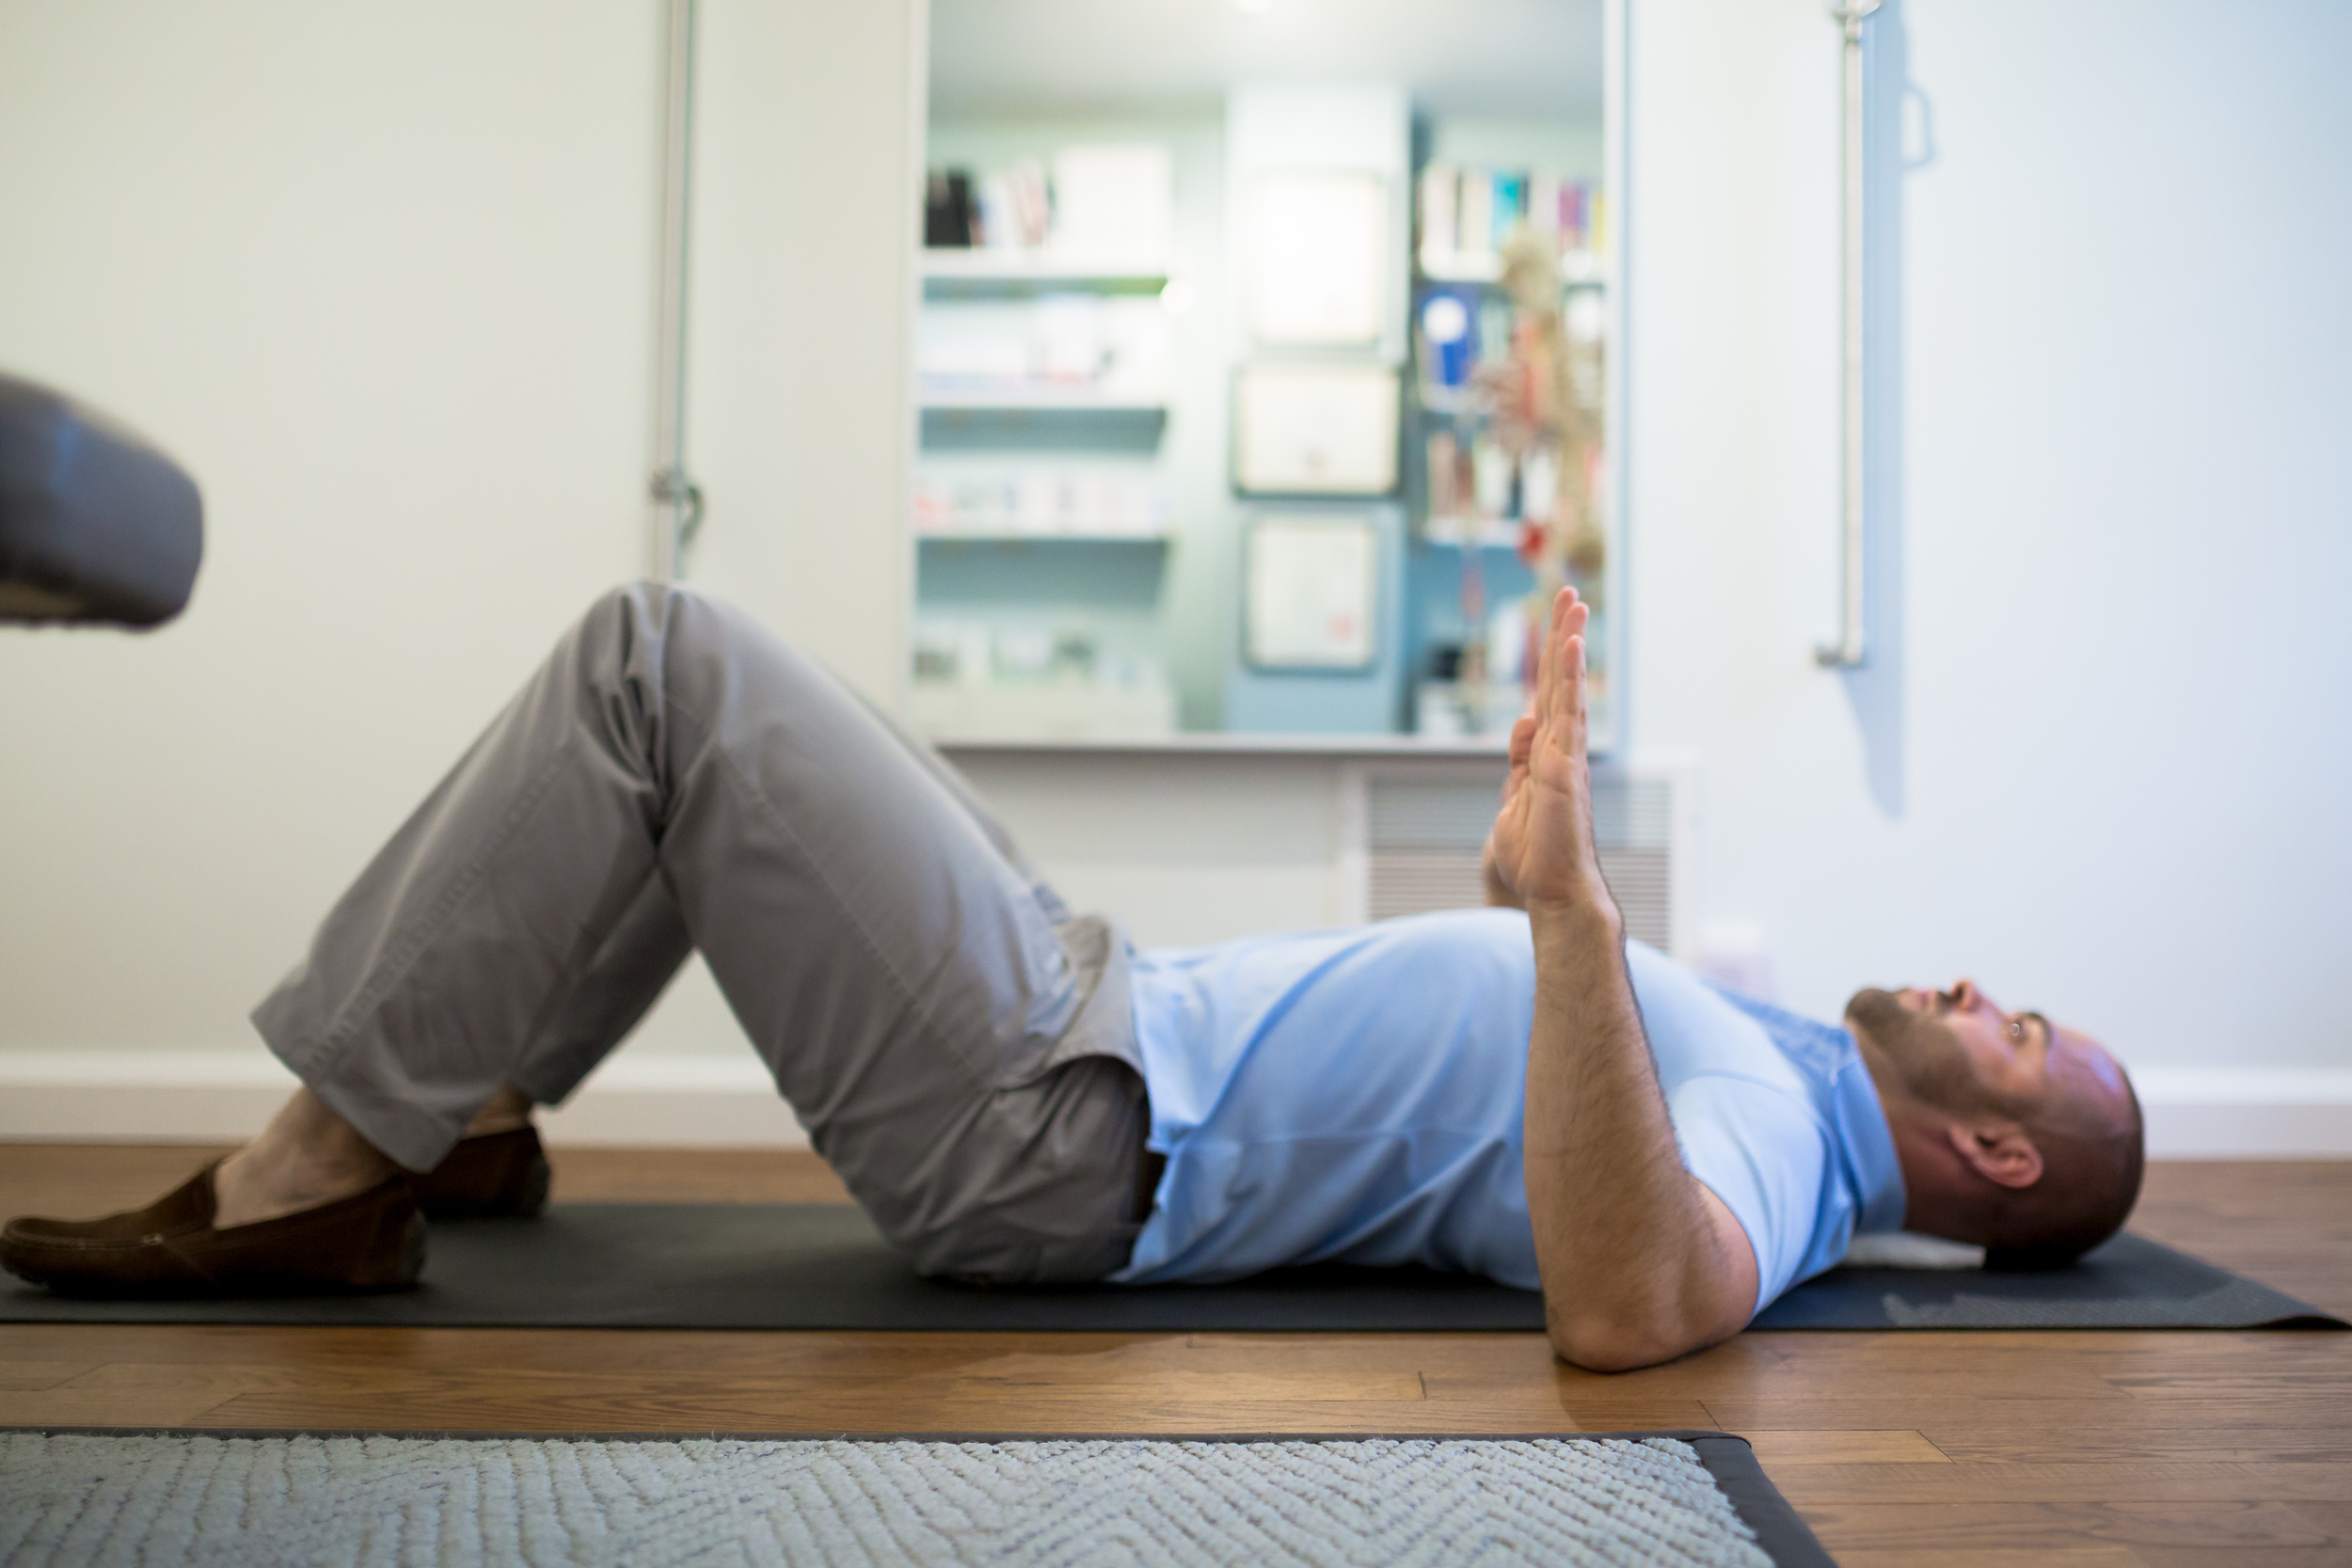 STEP 3:  As you maintain the abdominal brace and shoulder blade squeeze, bring your elbows to the floor next to your shoulders. As you keep your body braced, push your spine against the towel and your elbows against the floor.